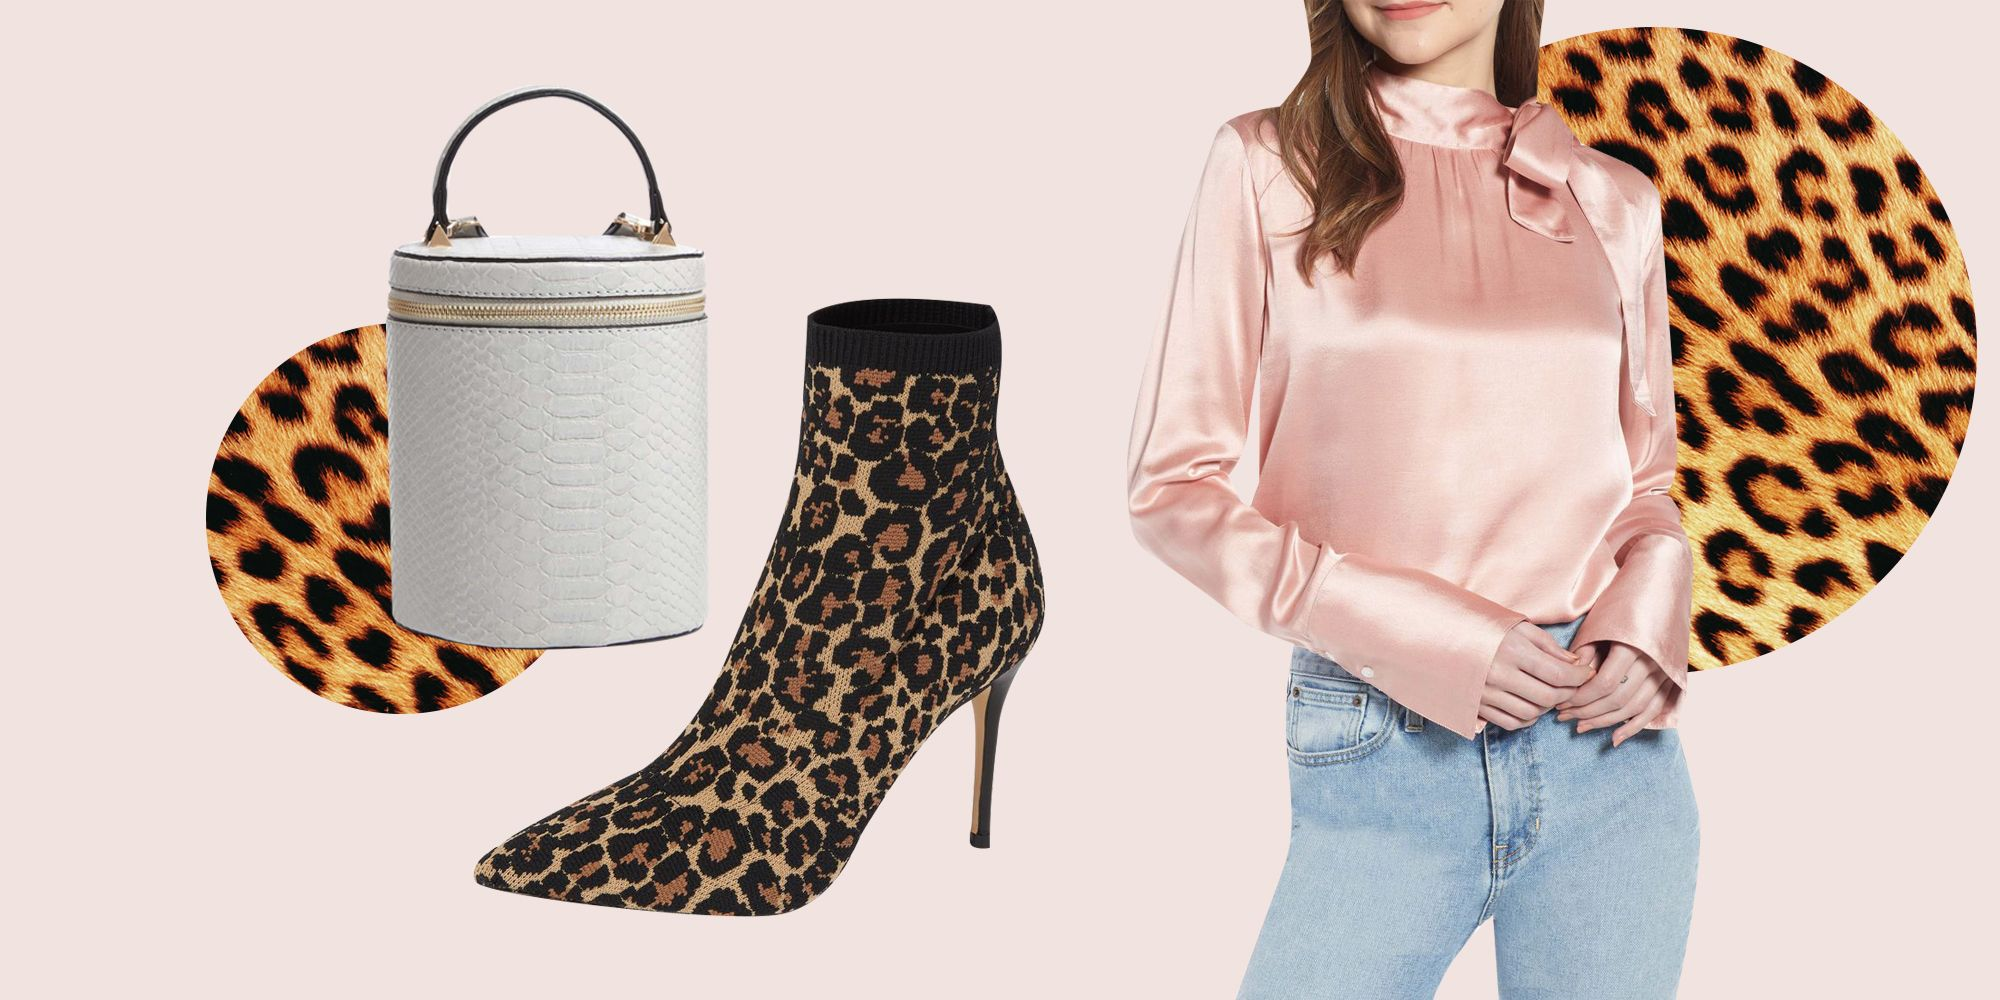 Say Goodbye to All Your Money Because Nordstrom's Winter Sale Is Finally Here